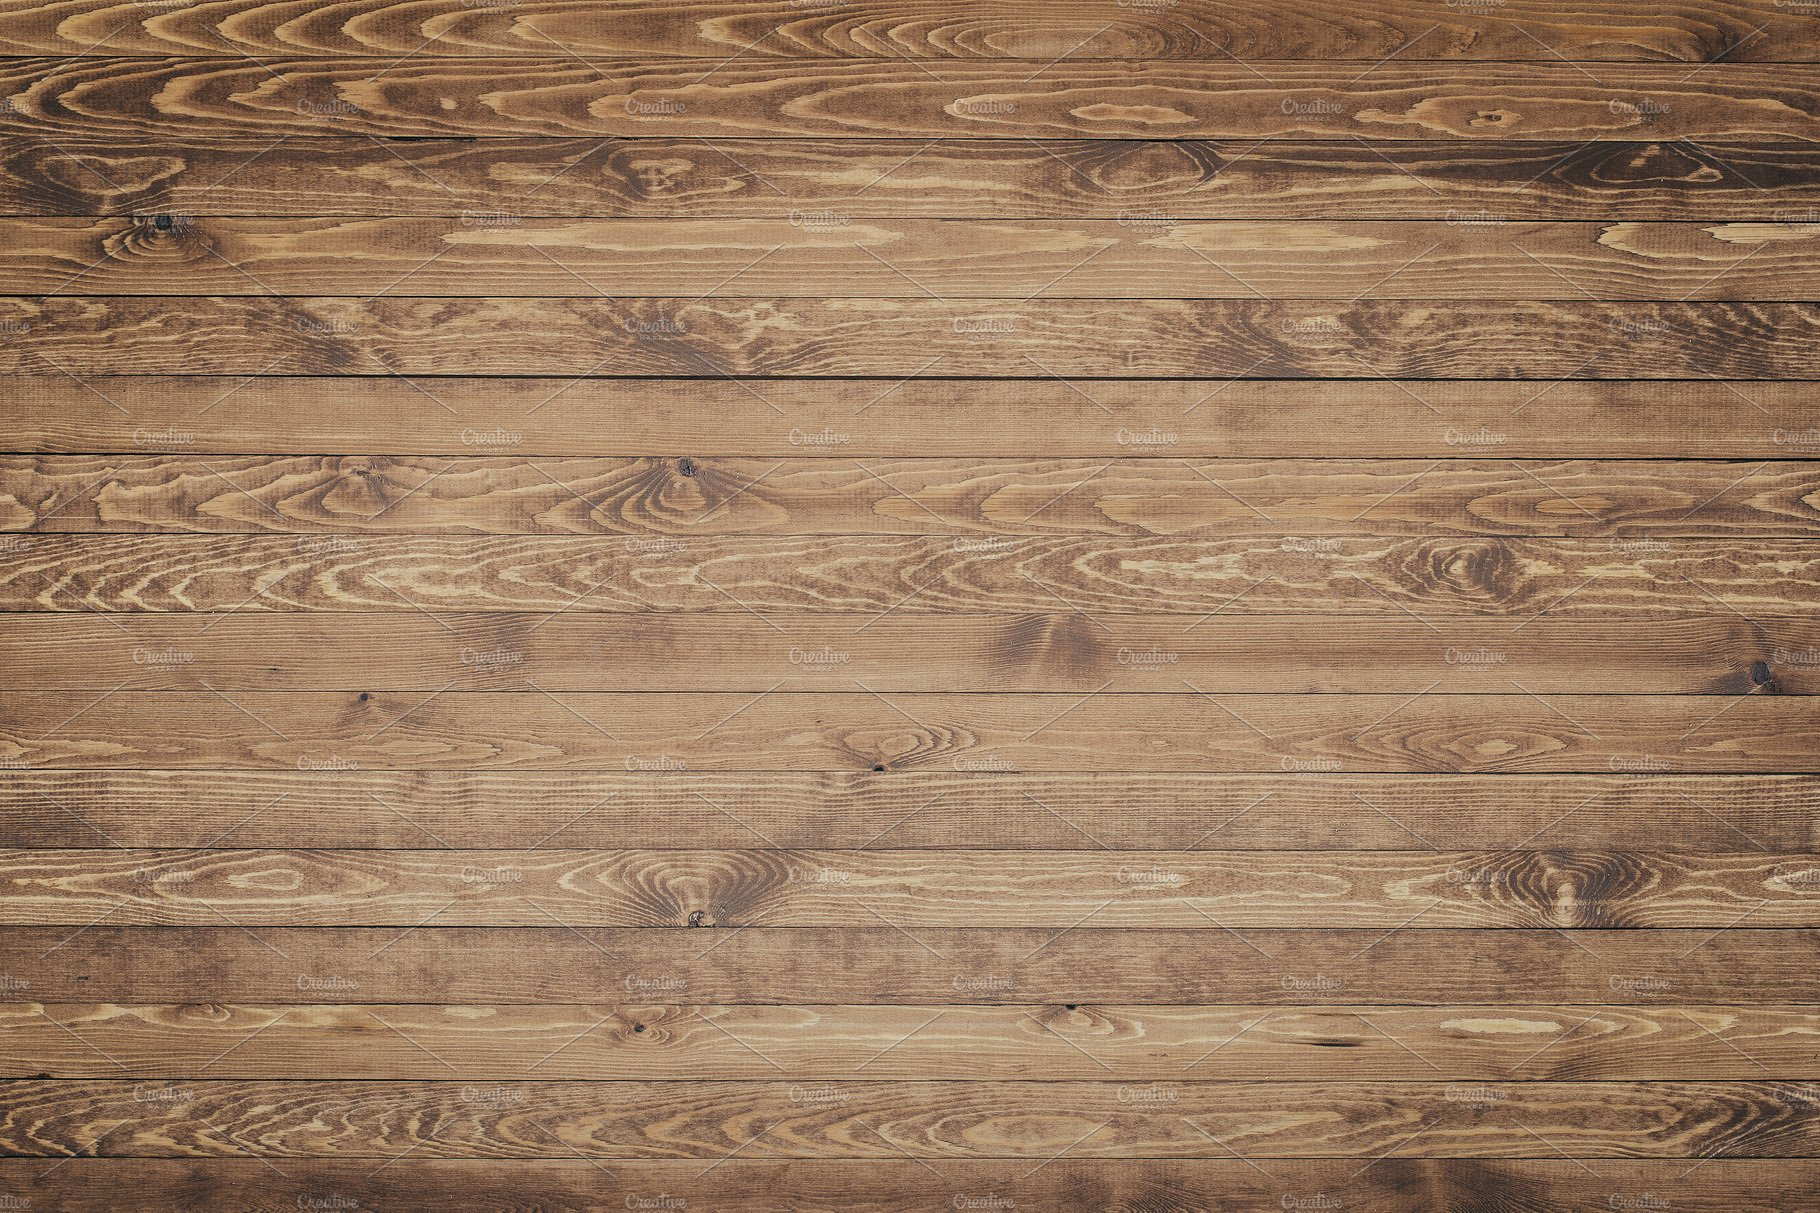 Grunge wood texture background surface ~ Abstract Photos ~ Creative ...